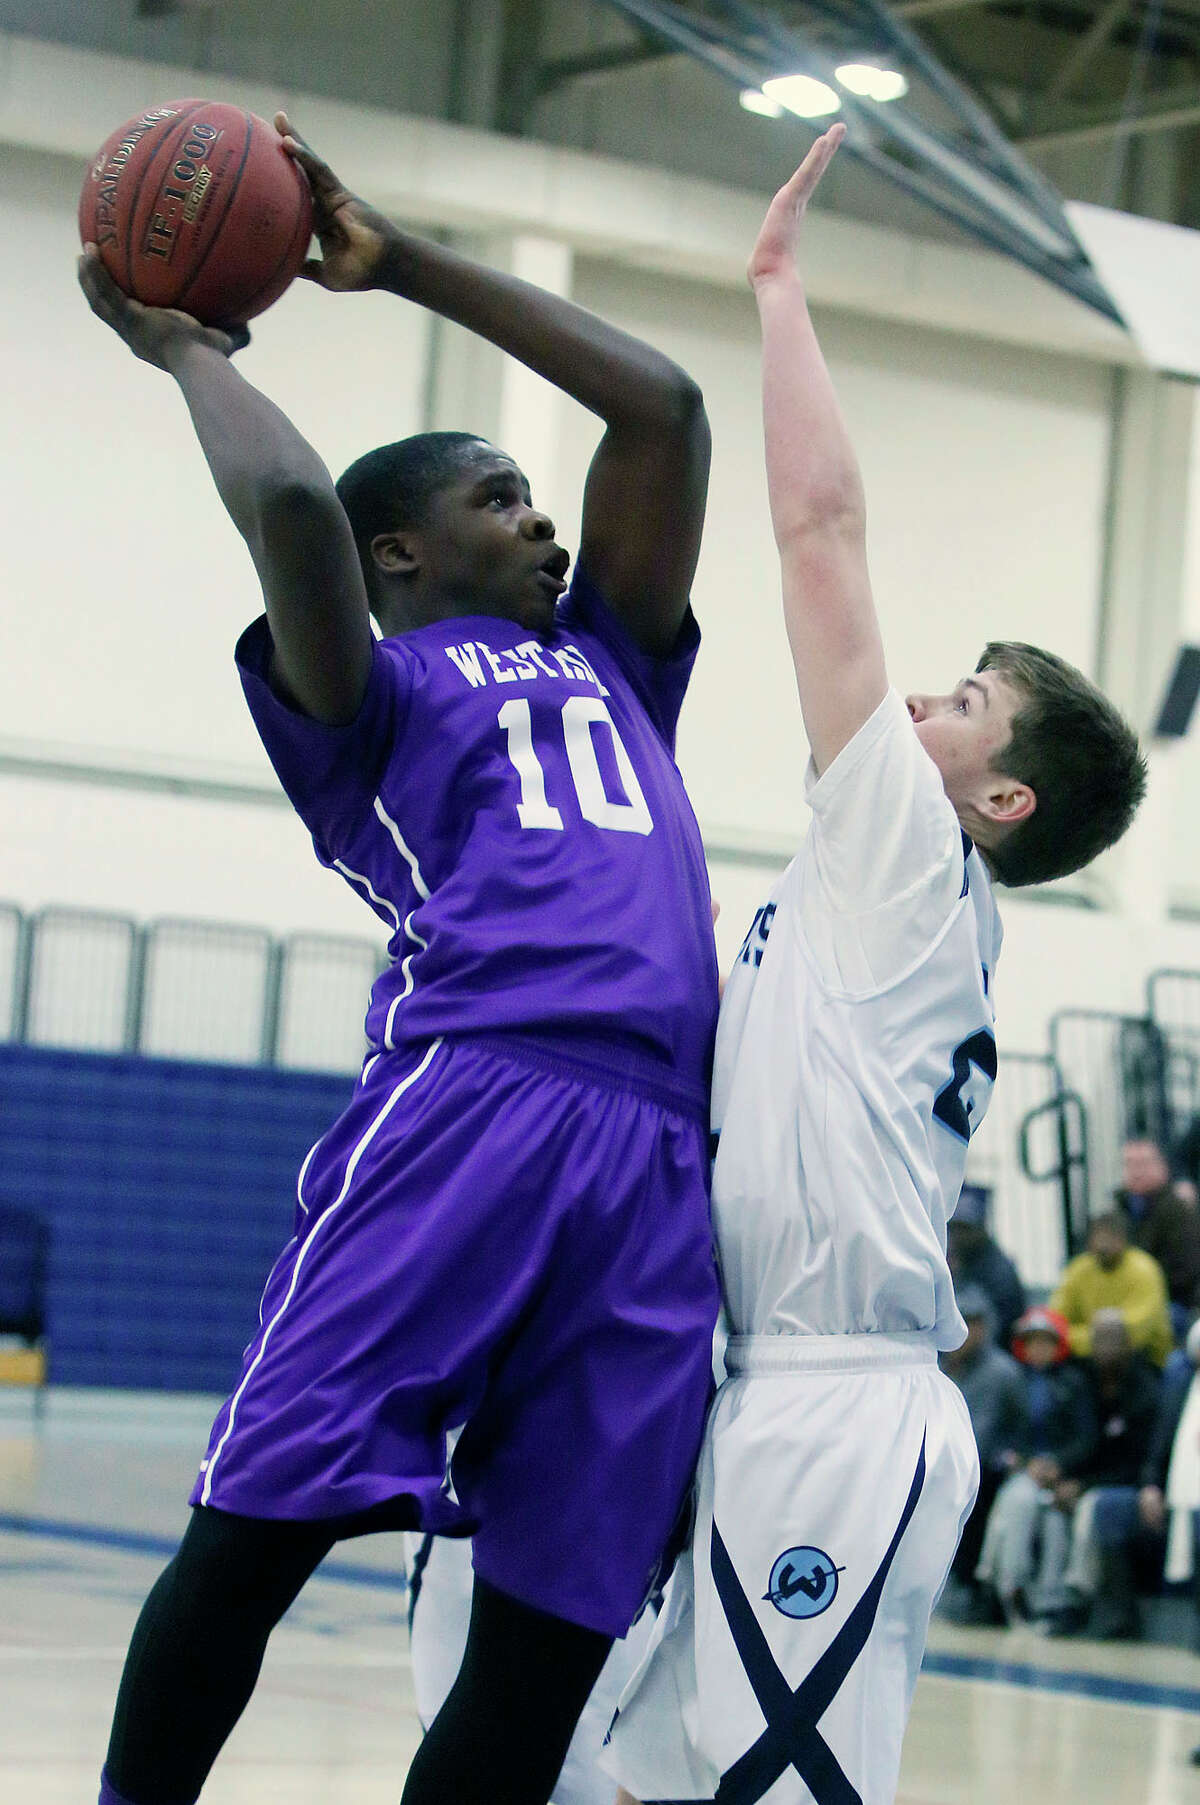 Westhill's Tyrell Alexander puts up a shot while under pressure from Wilton 's Jack Williams during their basketball game at Wilton High School in Wilton, Conn., on Thursday, Jan. 22, 2015. Westhill won, 72-67.